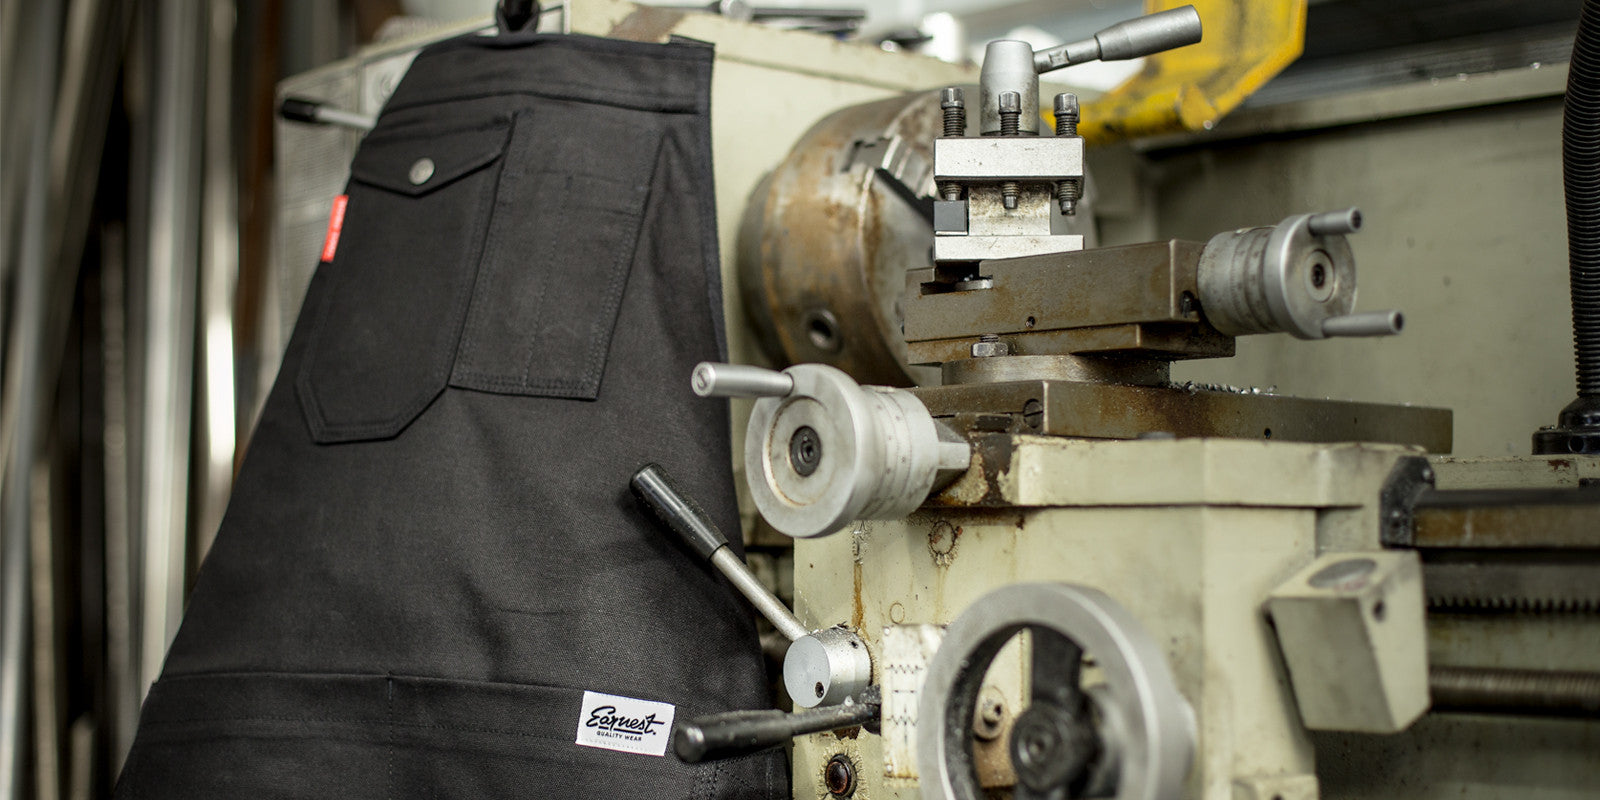 Earnest quality workwear clothing